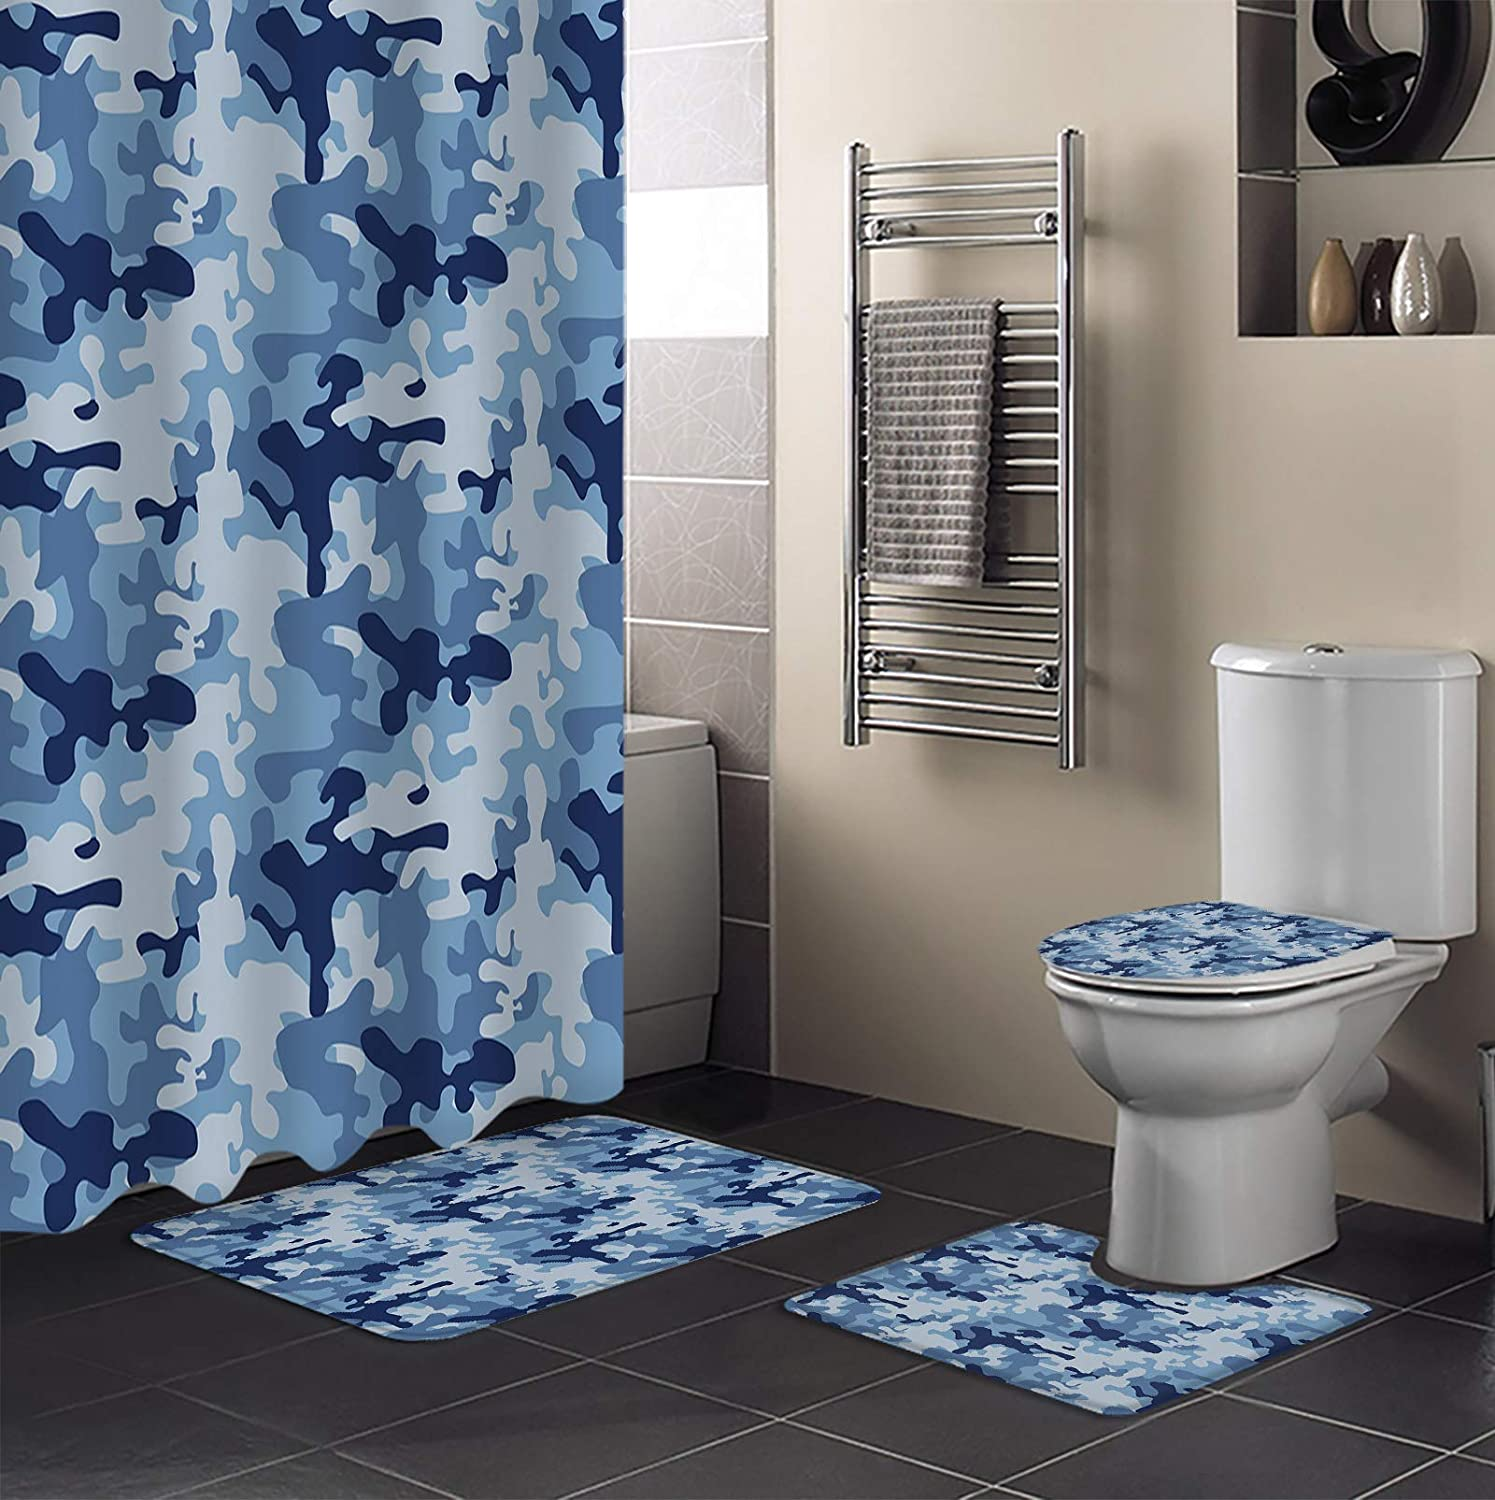 Beauty Decor 4 Piece Shower Curtain Cheap super special price Handsom Raleigh Mall Blue Sets Camouflage